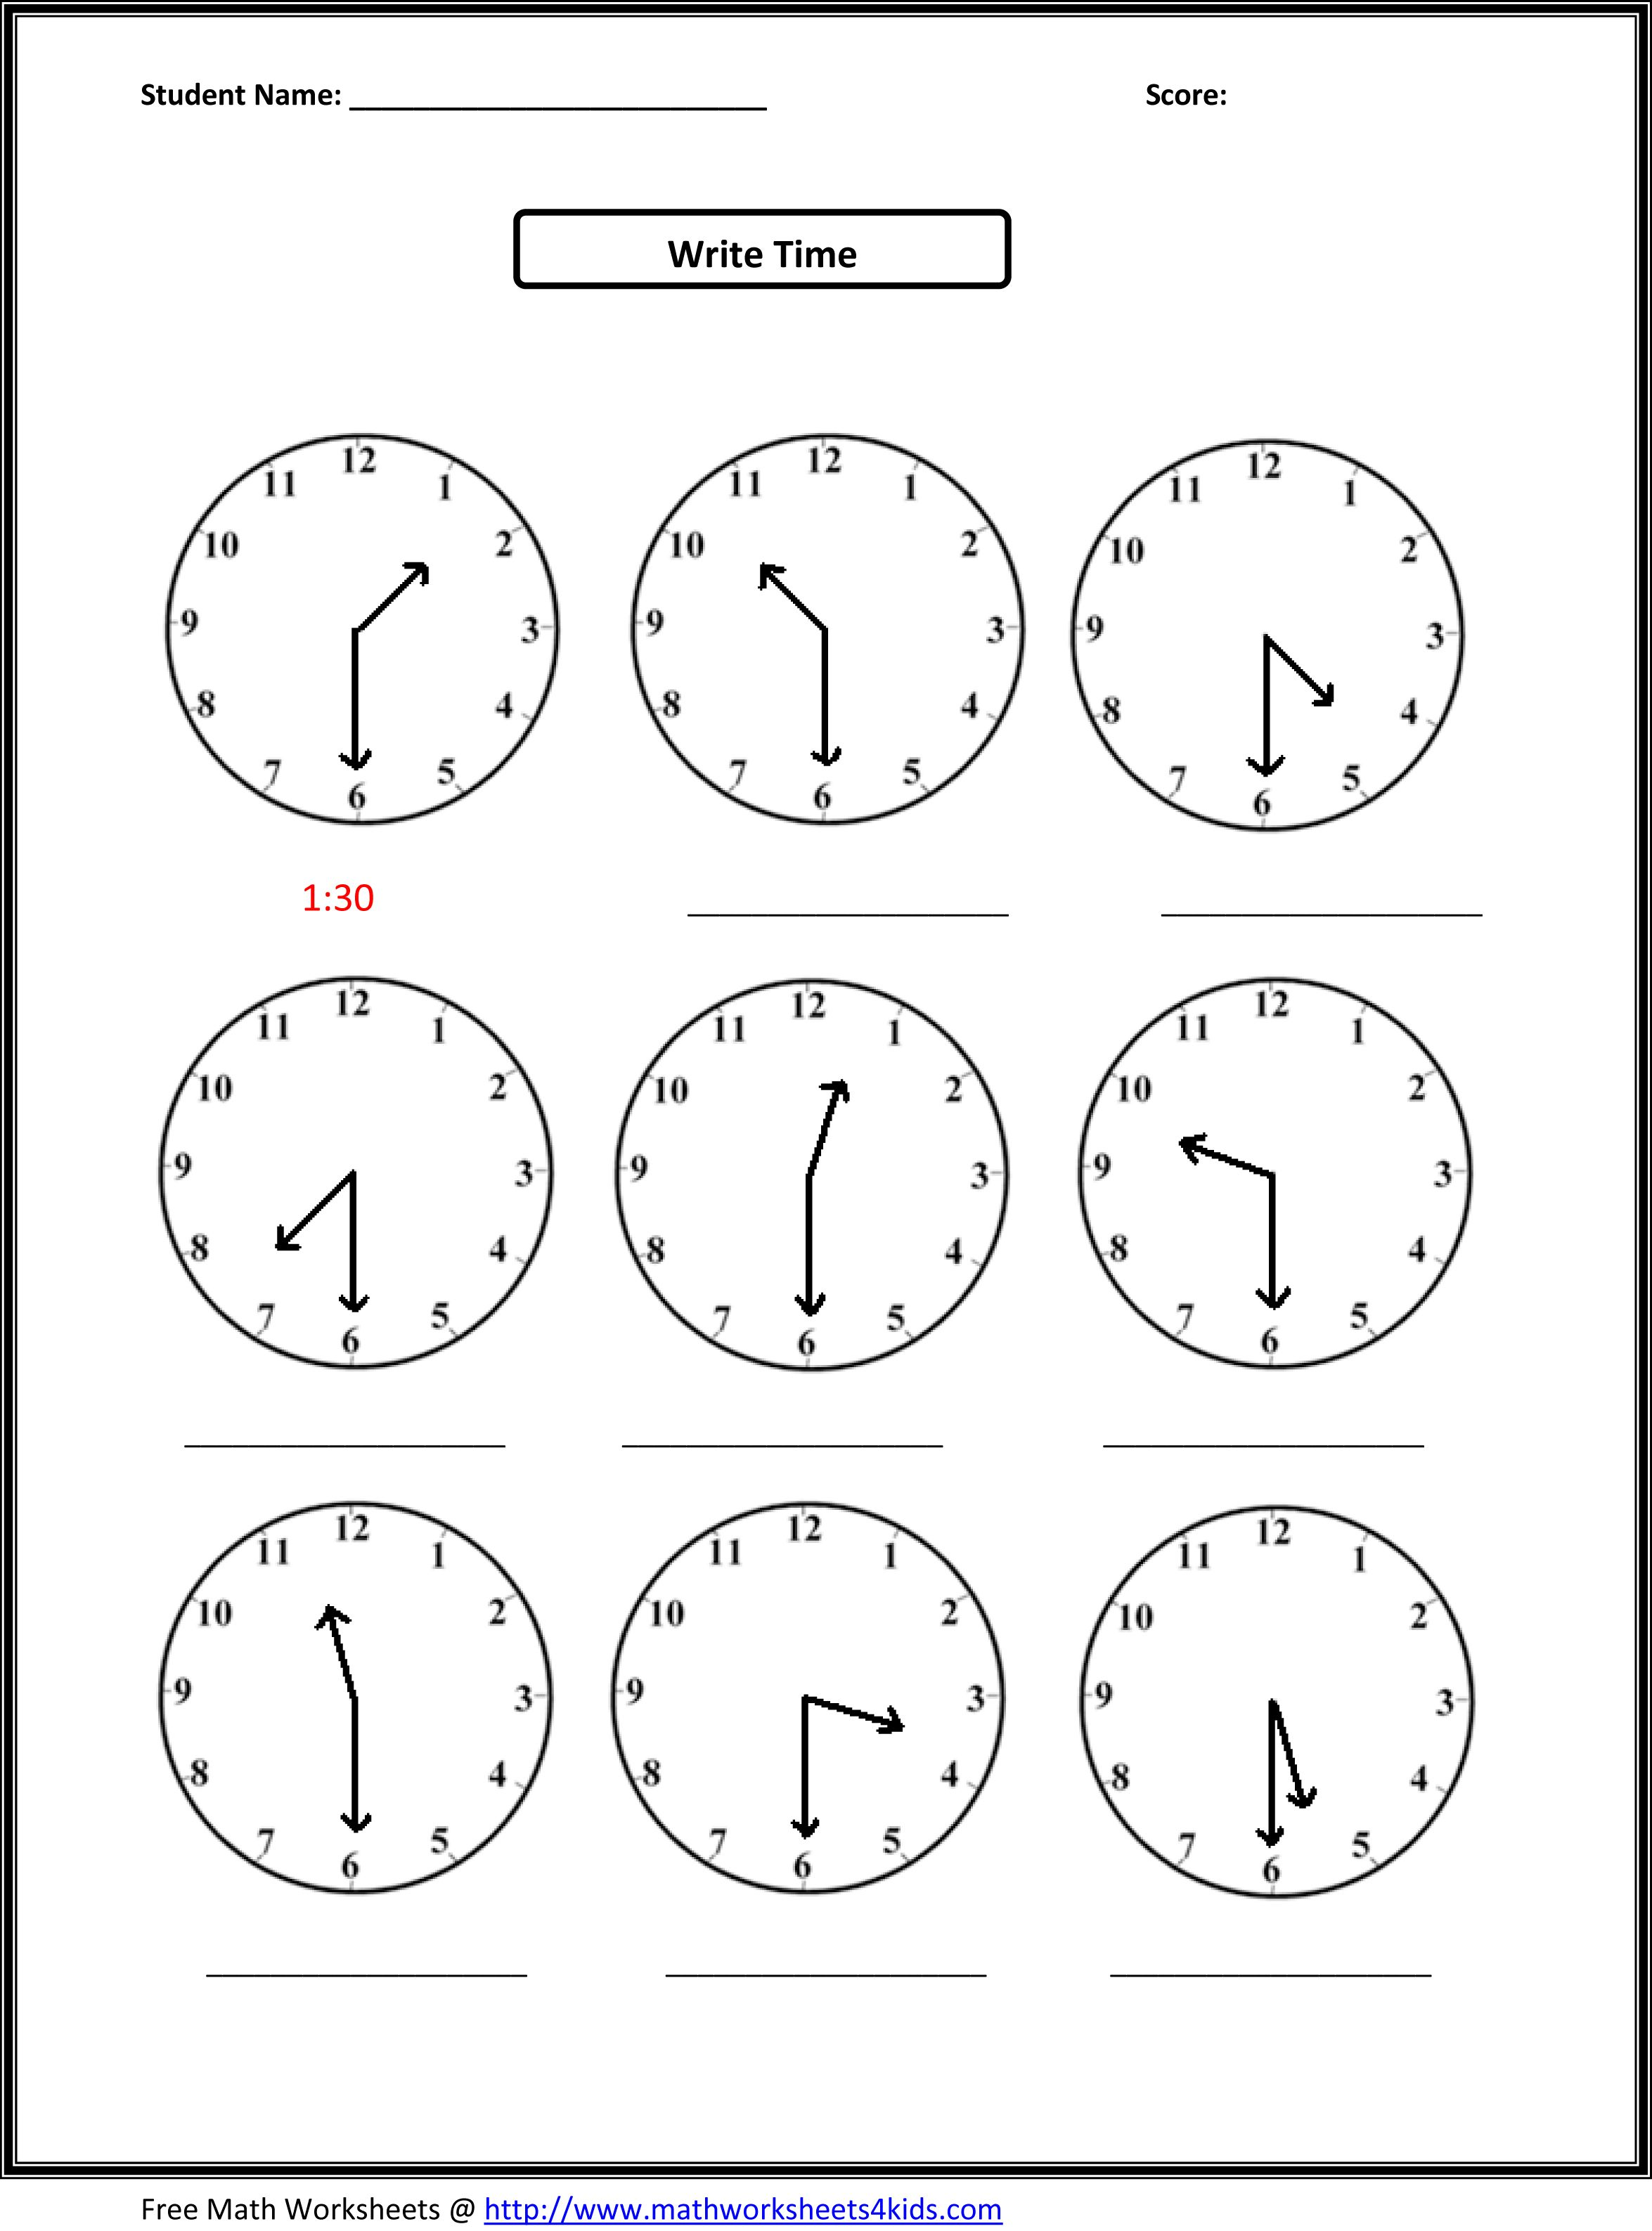 Weirdmailus  Scenic Worksheet On Time For Grade   Reocurent With Engaging Free Printable Telling Time Worksheets Nd Grade  Reocurent With Extraordinary Th Grade Math Word Problem Worksheets Also Values List Worksheet In Addition Coordinate Graphing Picture Worksheets And Kindergarten Addition Worksheets Free As Well As Biography Questions Worksheet Additionally Even And Odd Worksheet From Reocurentcom With Weirdmailus  Engaging Worksheet On Time For Grade   Reocurent With Extraordinary Free Printable Telling Time Worksheets Nd Grade  Reocurent And Scenic Th Grade Math Word Problem Worksheets Also Values List Worksheet In Addition Coordinate Graphing Picture Worksheets From Reocurentcom